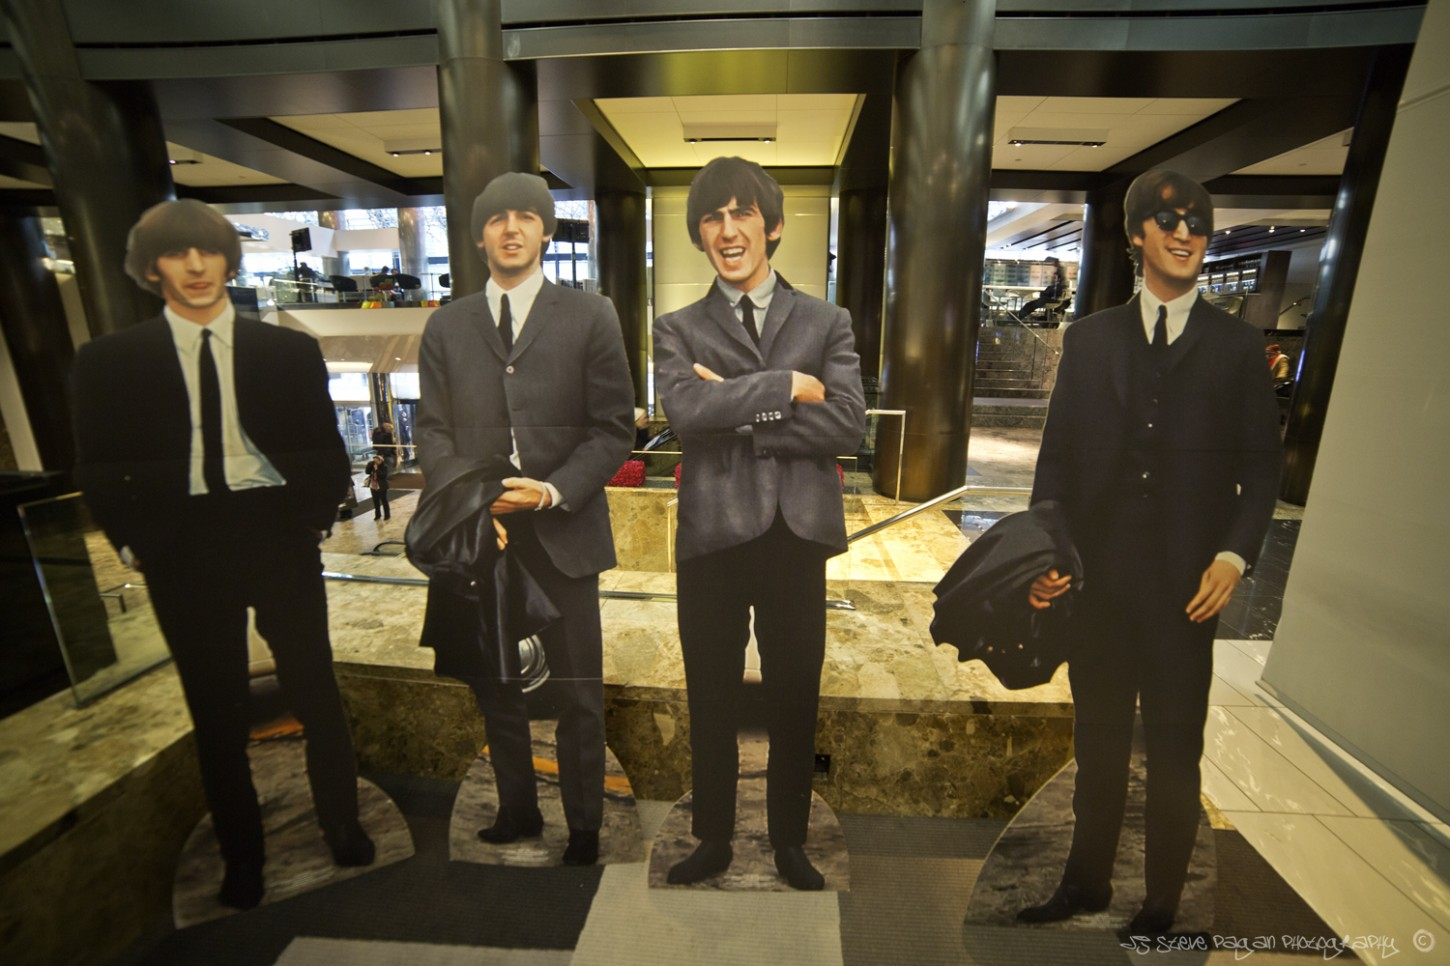 The Beatles of course made their way to the Grand Hyatt for NYC Fest 14.